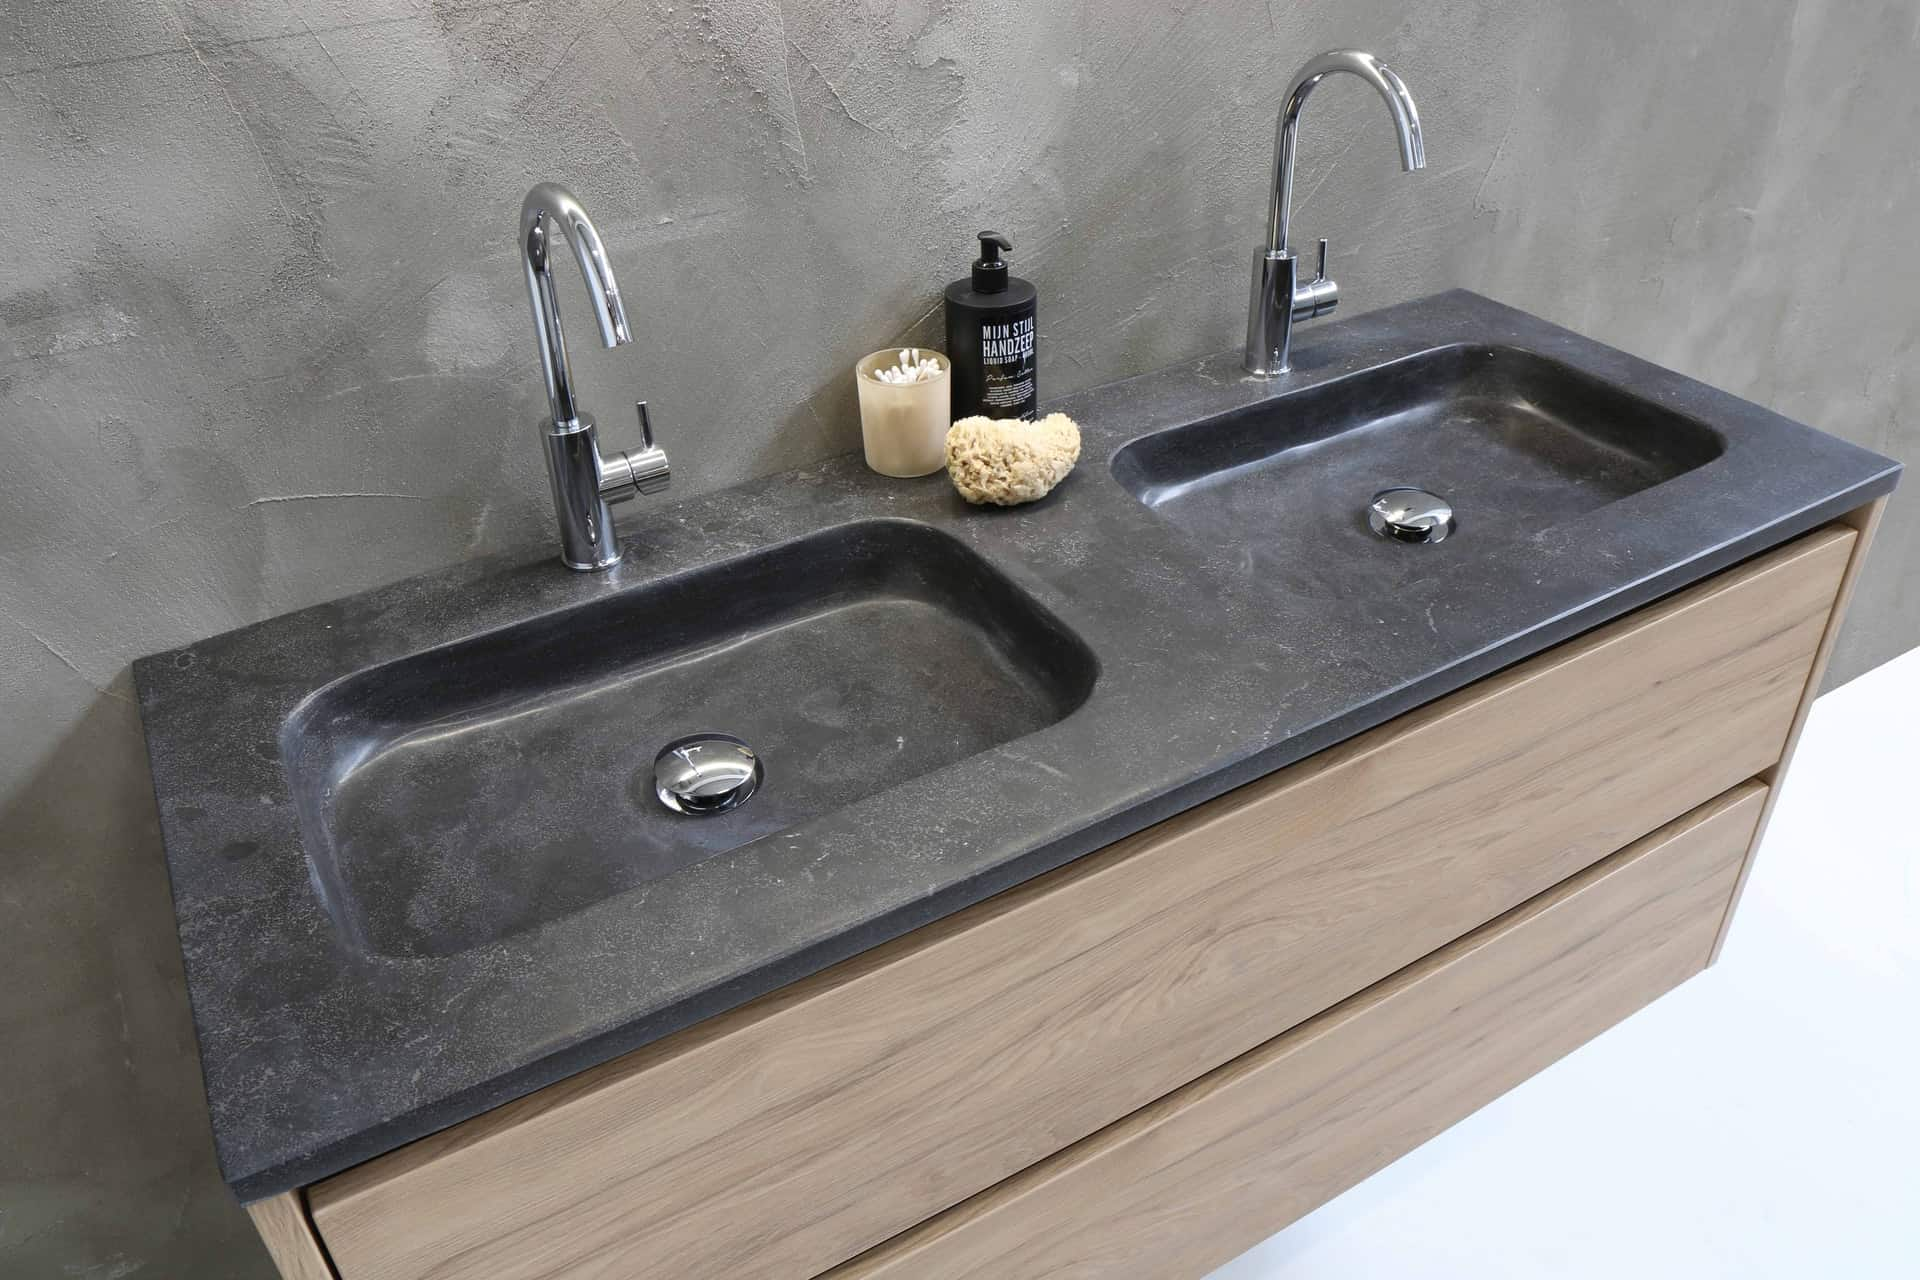 Pfister and delta faucets on a double sink